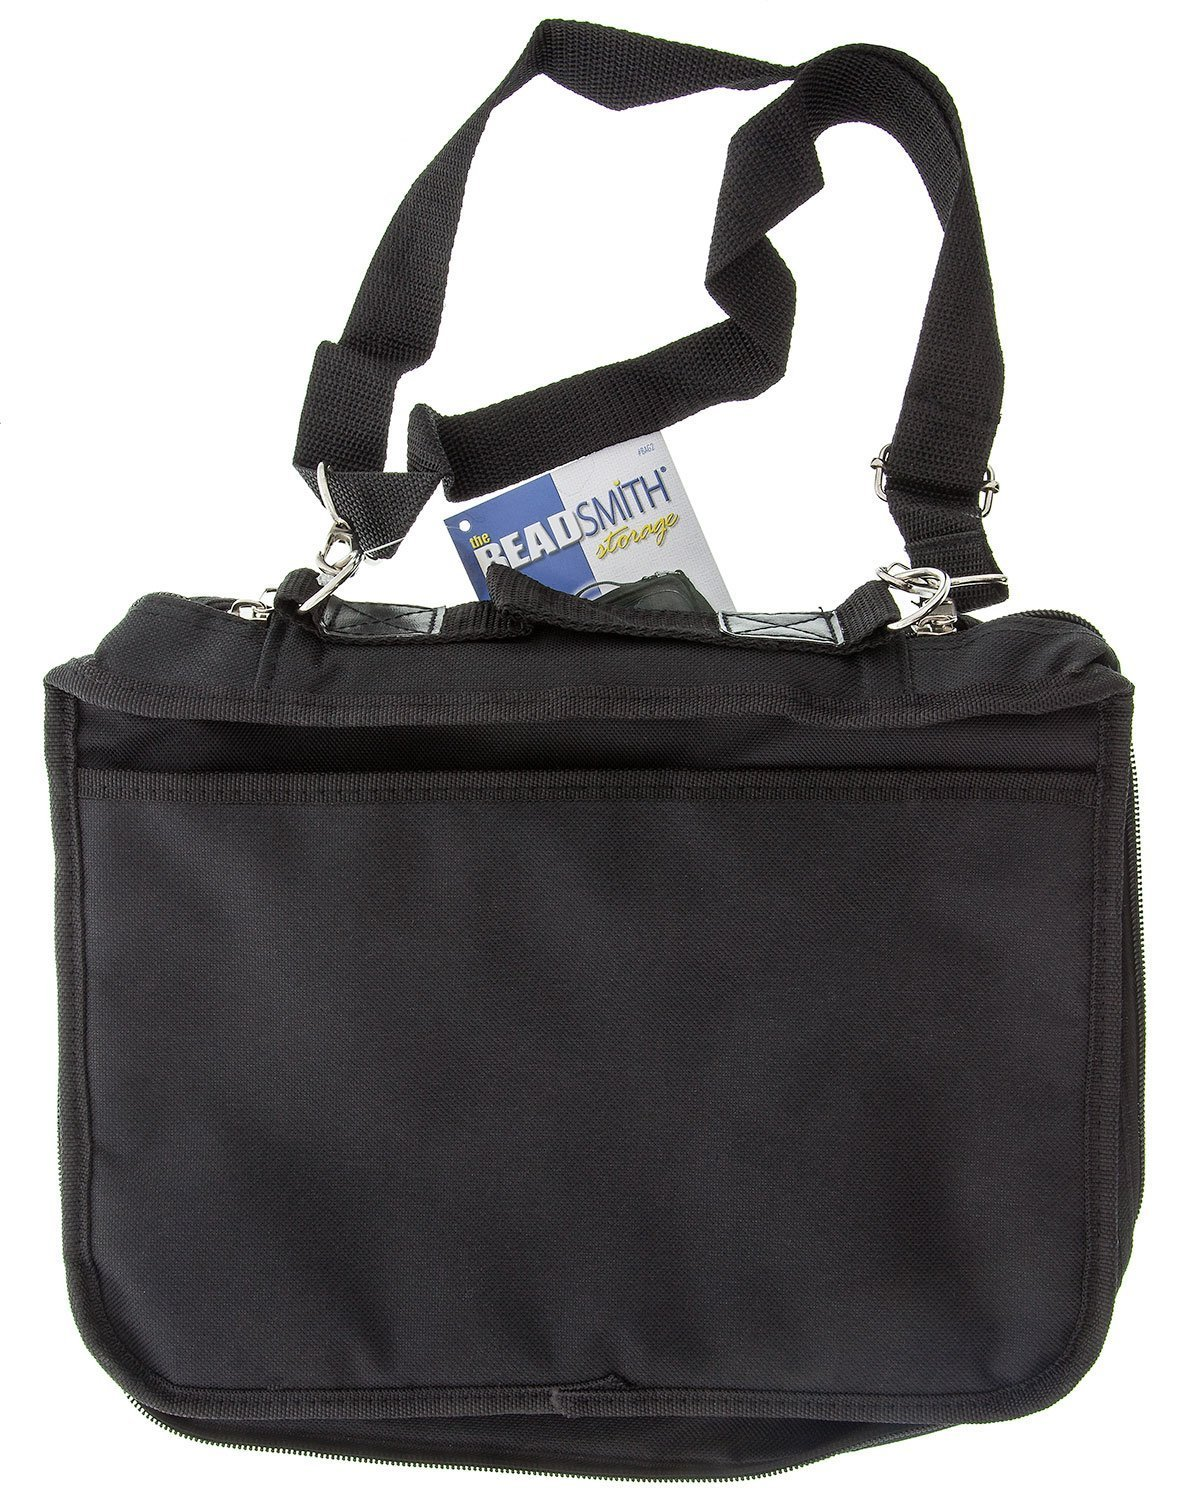 BeadSmith Black Crafter's Tote Bag, with 2 Removable Pockets and 23 Compartments 12x10 inch UK Shop